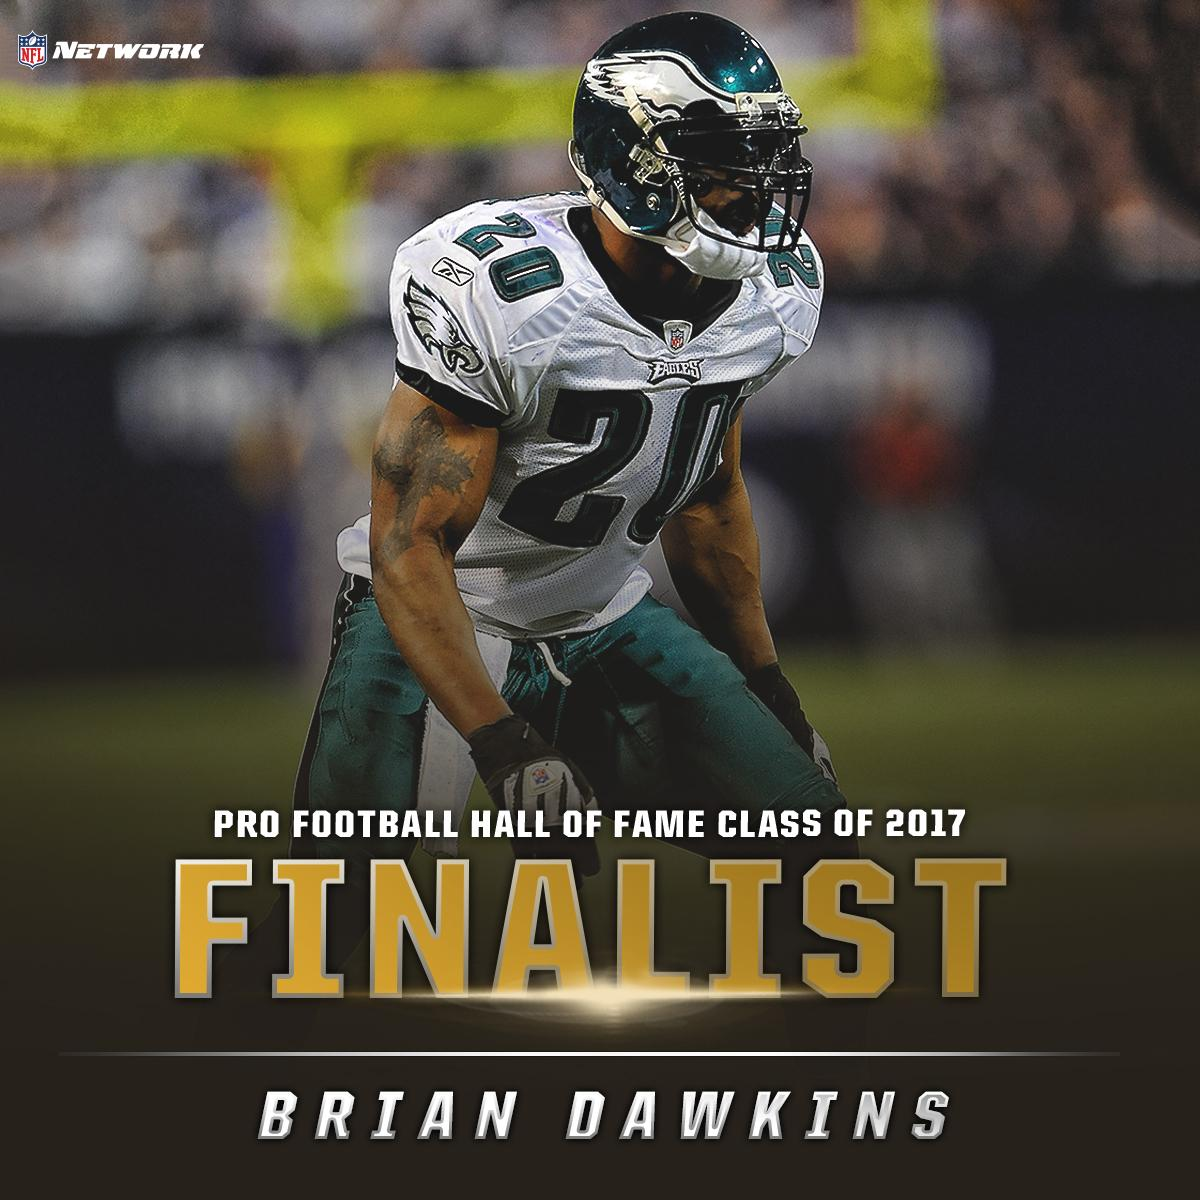 In his 1st year of eligibility, @BrianDawkins is one step closer to the Pro Football Hall of Fame! #PFHOF17 #WeaponX https://t.co/UR84MuxeFT